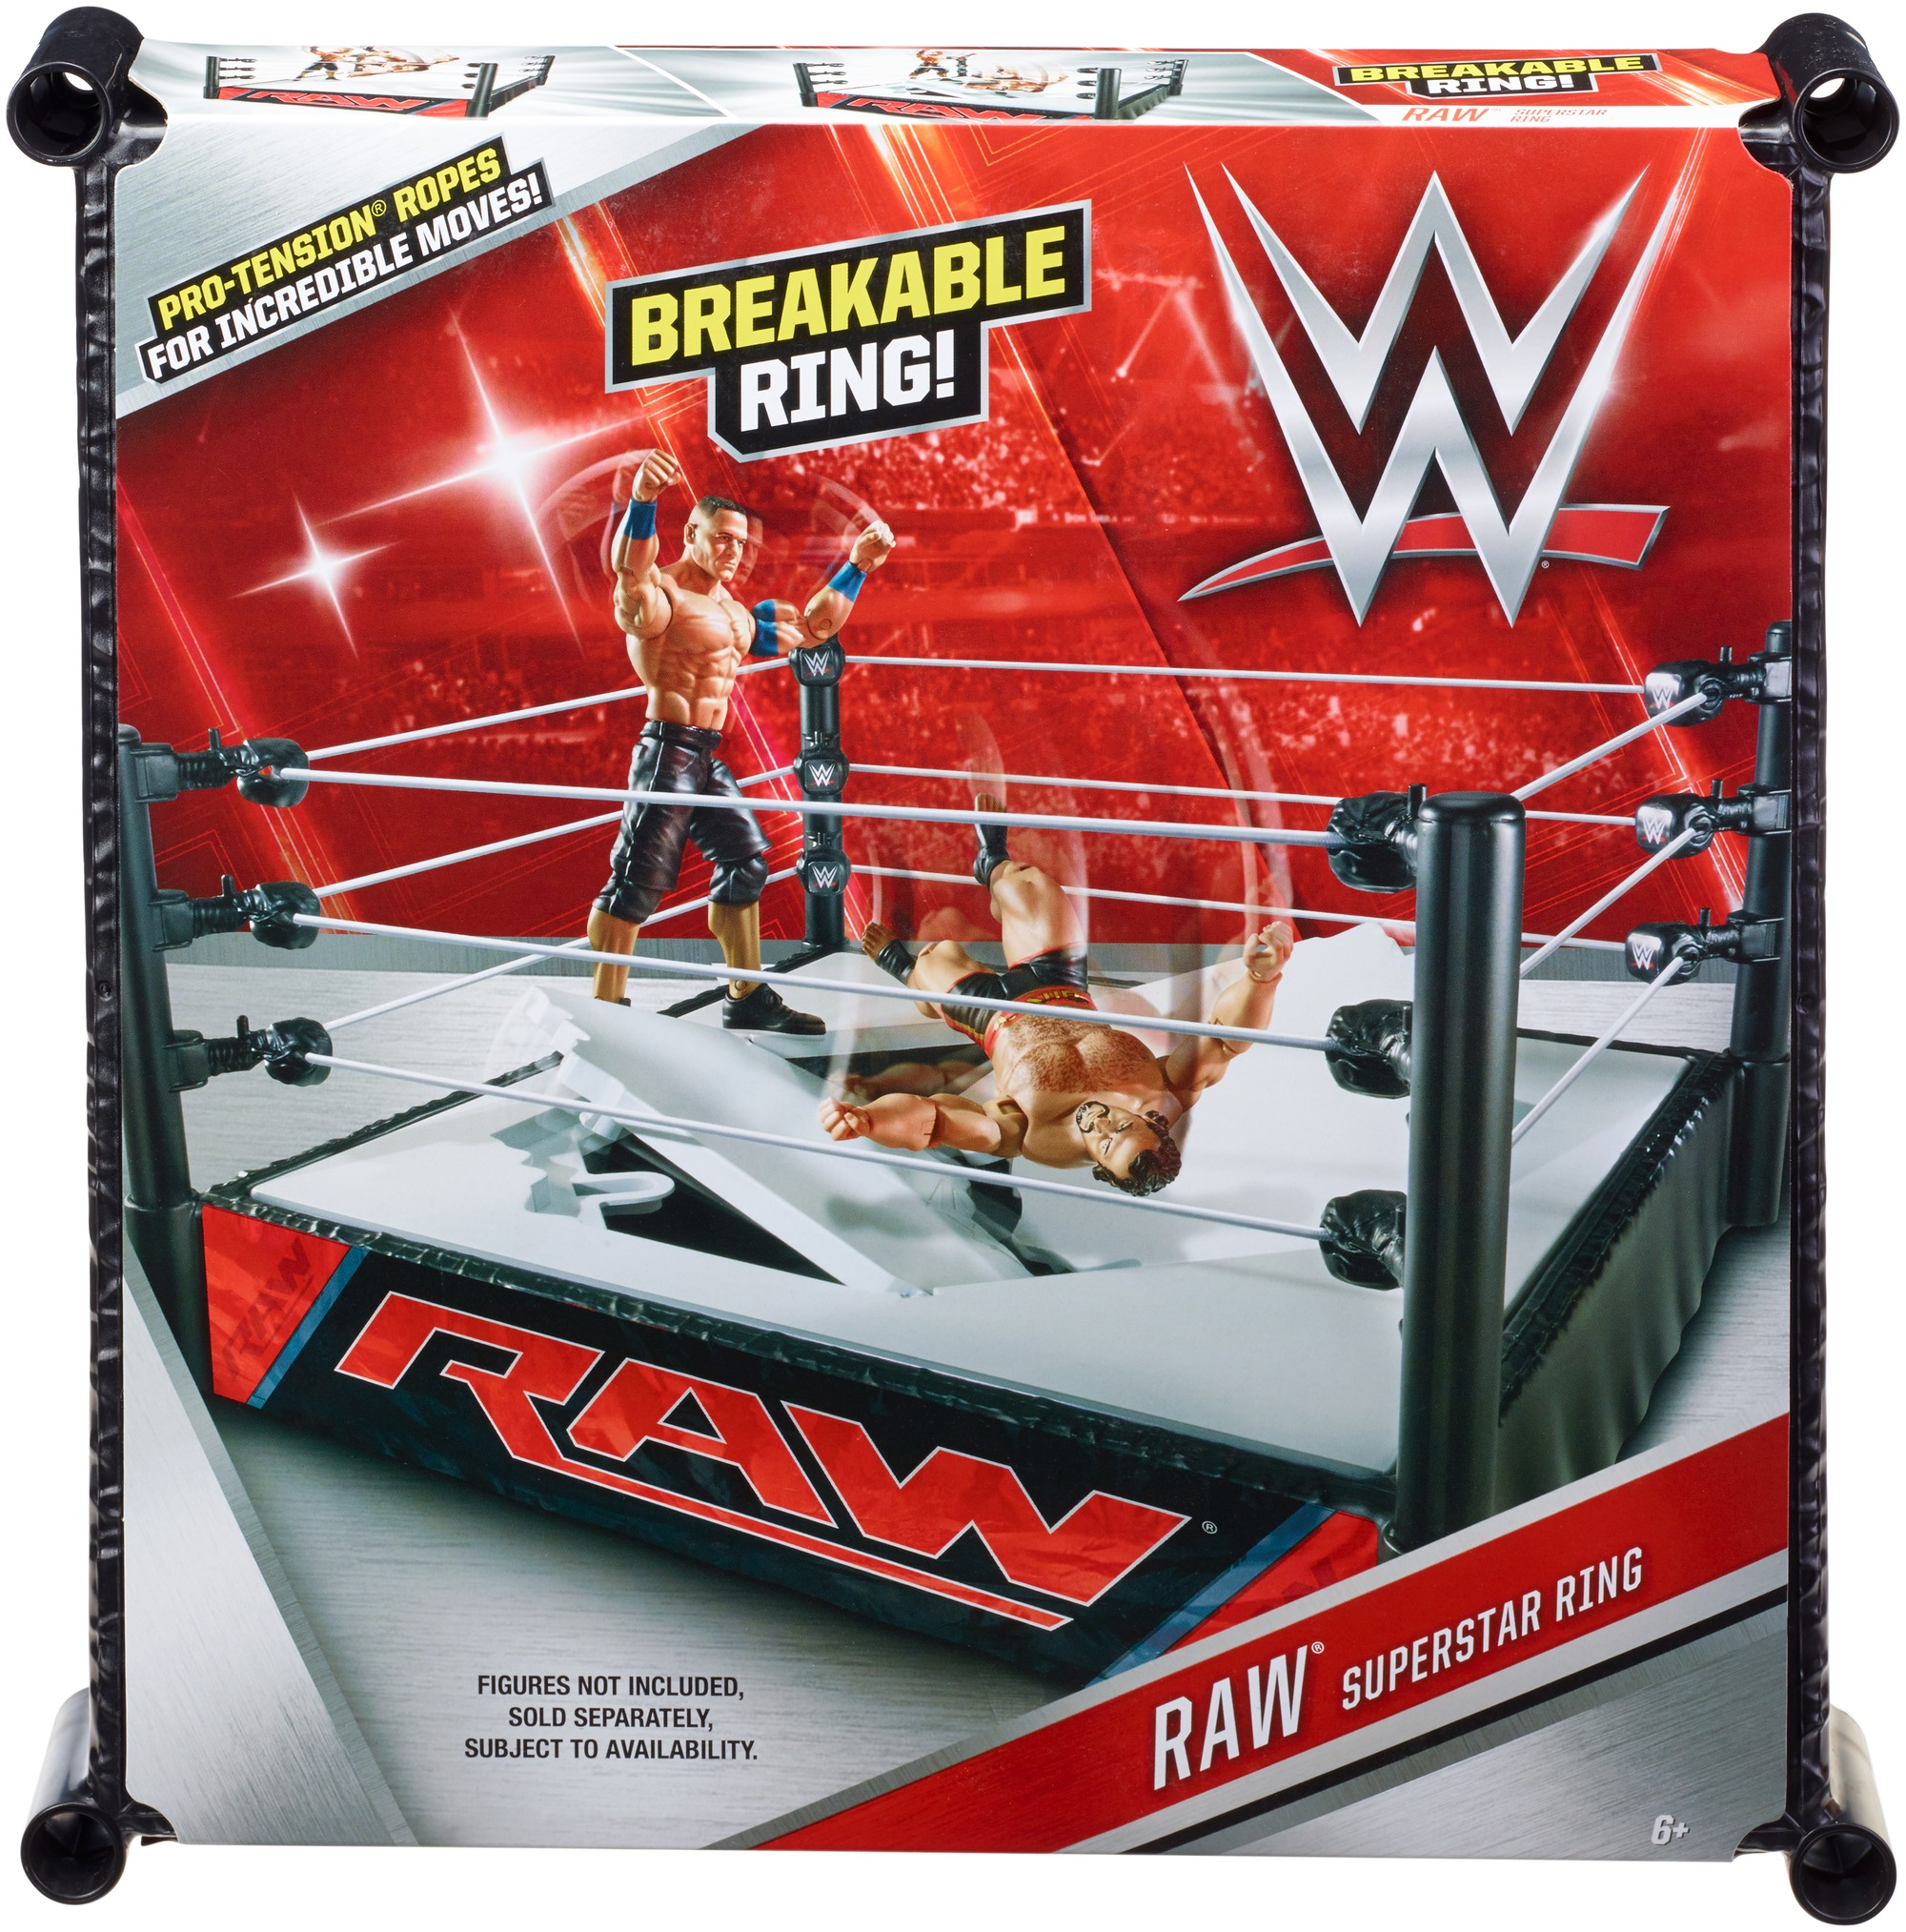 WWE Superstar Ring With 2 Swappable Ring Skirts Set